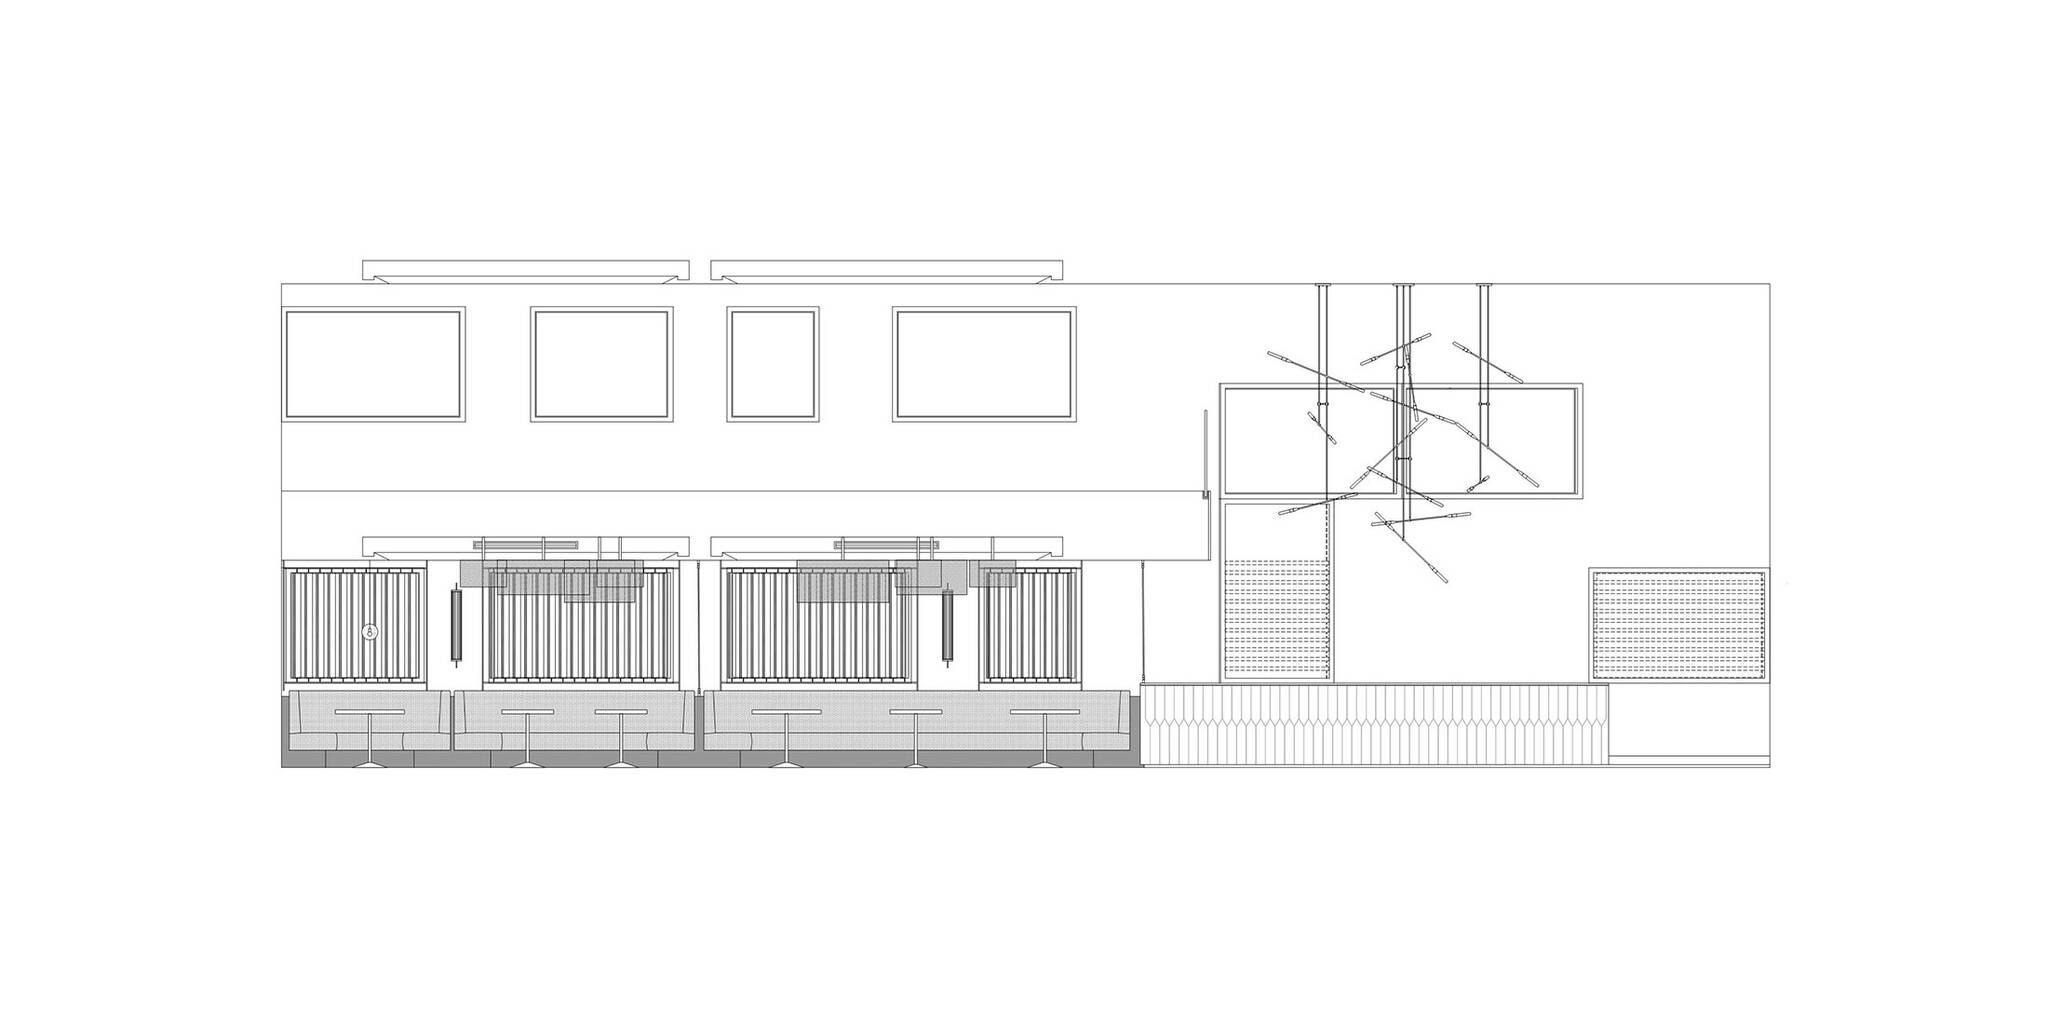 Interior elevation of the American Cut Bar & Grill project located at 495 Sylvan Avenue in Englewood Cliffs, New Jersey designed by the architecture studio Danny Forster & Architecture